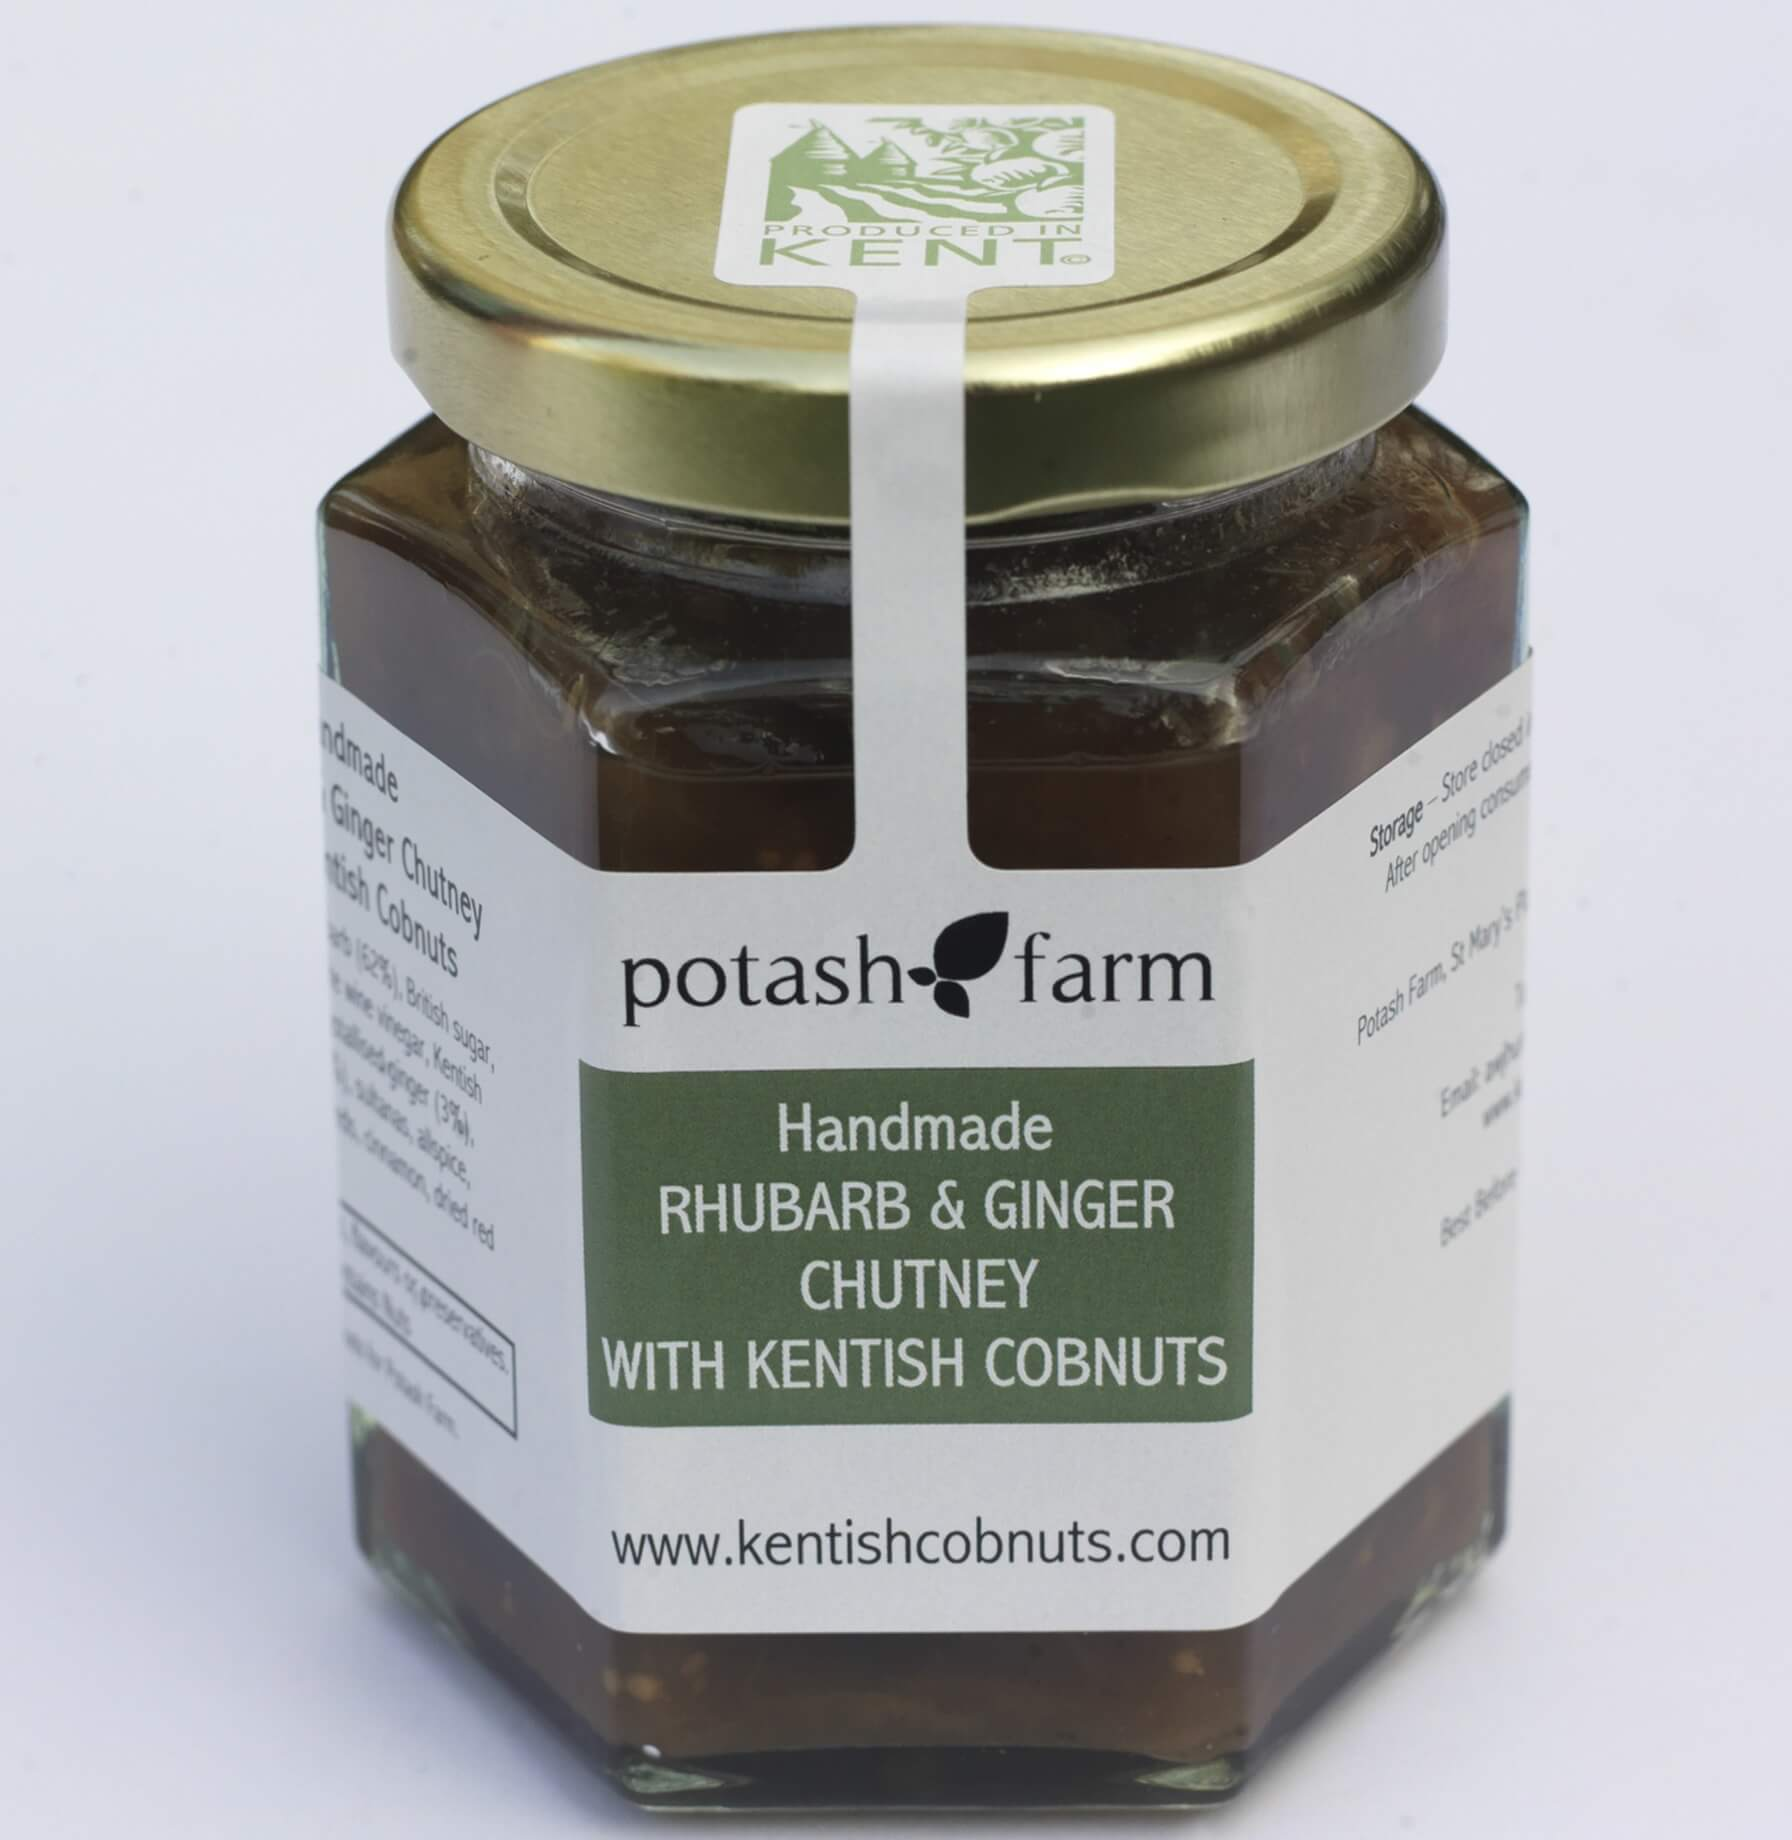 "Featured in the Telegraph Magazine - ""The Potash Farm Rhubarb and Ginger Chutney with Kentish Cobnuts. Rich with fruit and slightly crunchy from the Cobnuts. Unlike any chutney I've had."""